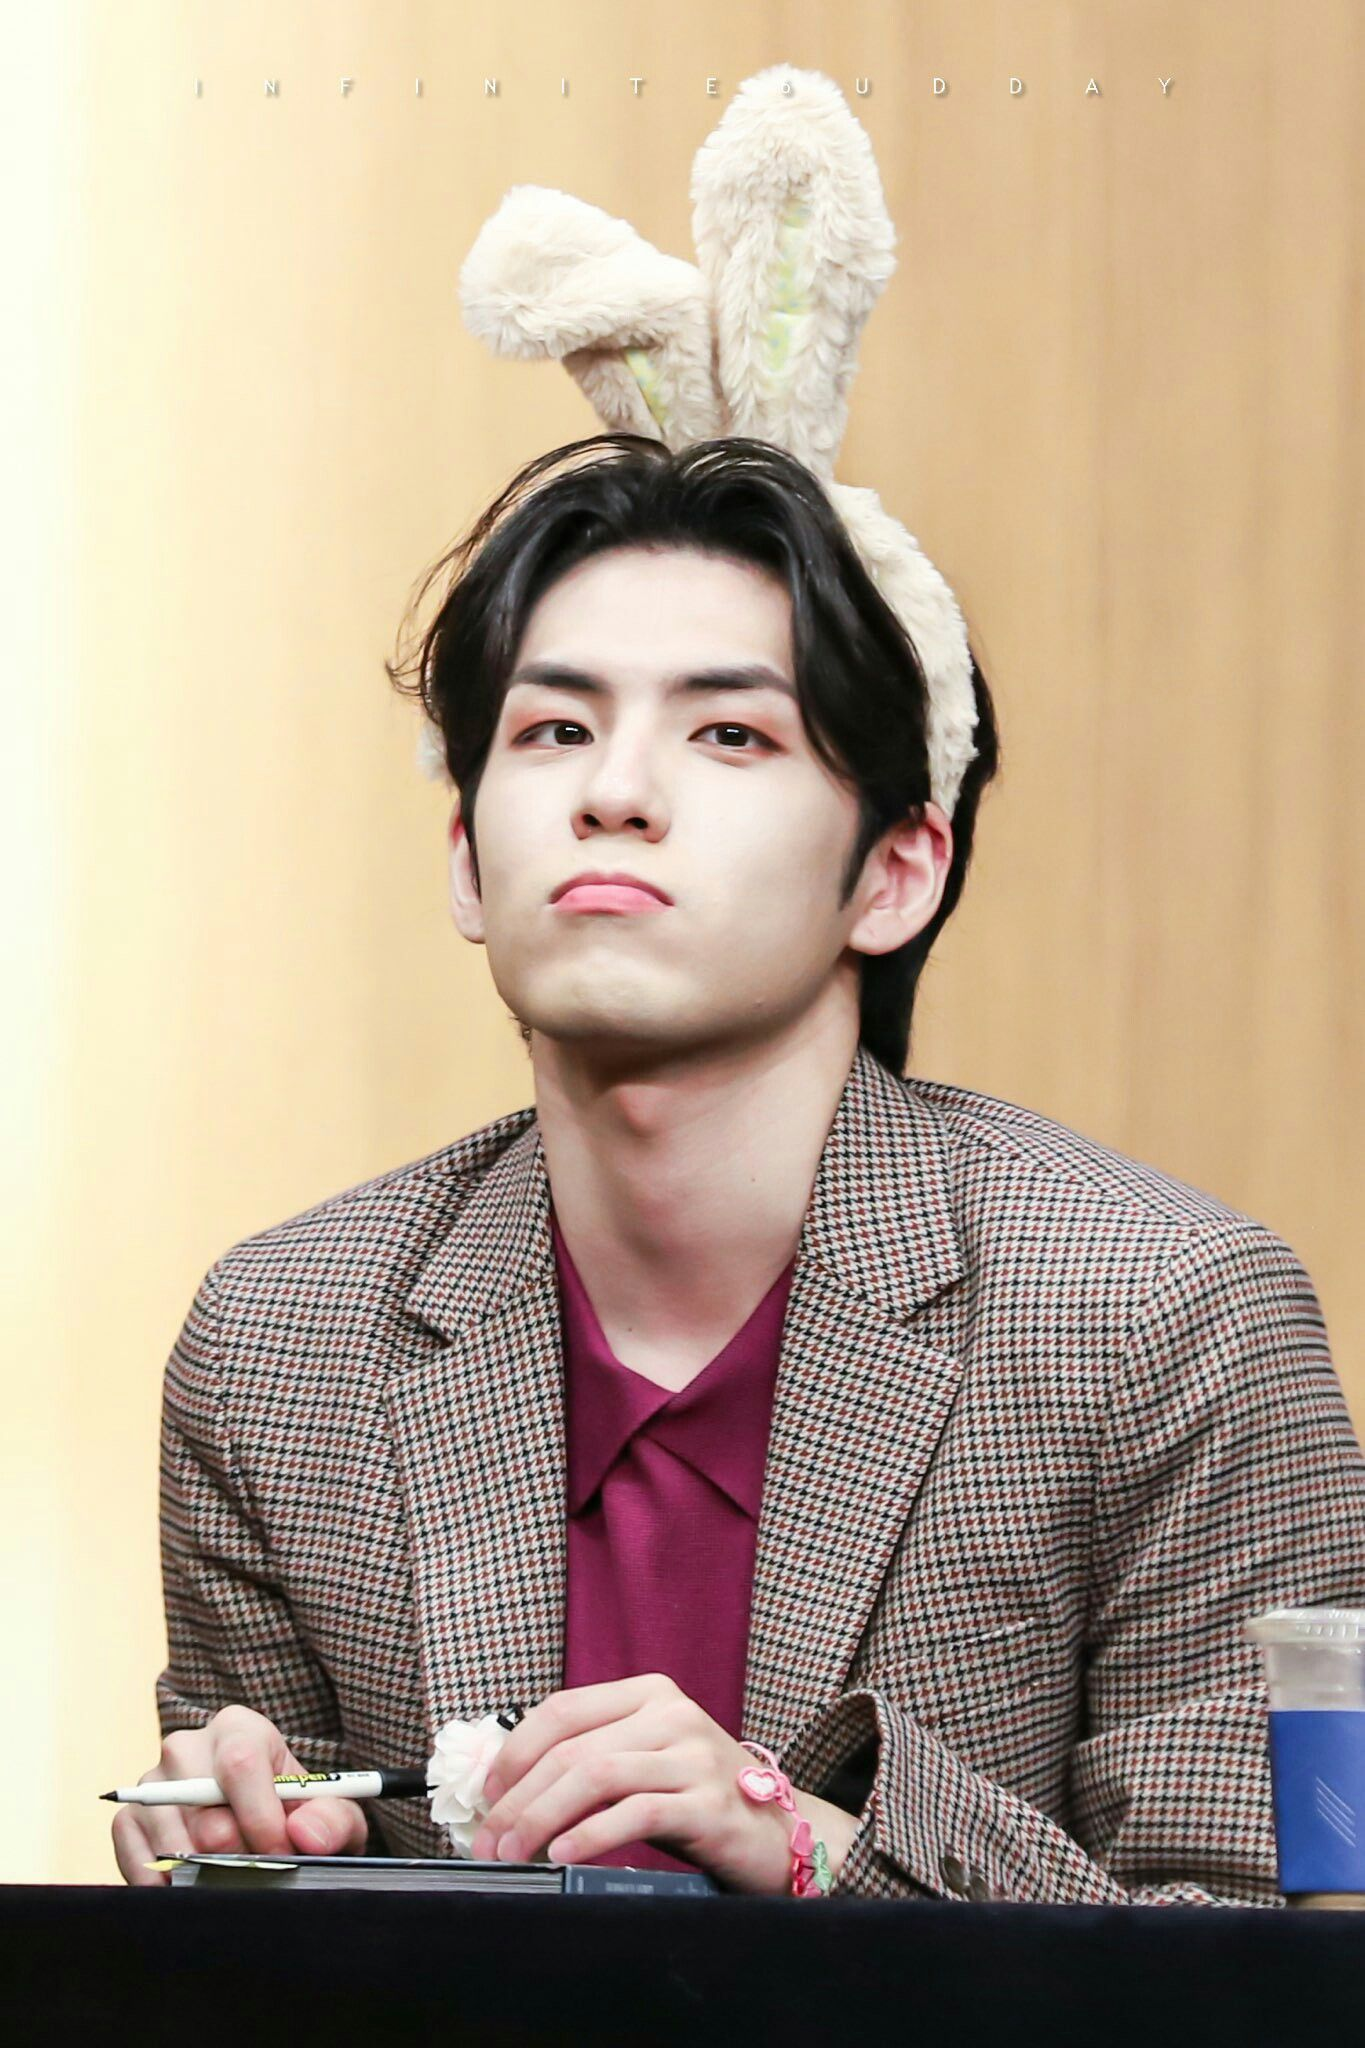 Pin by 허소미 on kpop in 2020 Day6, Kim wonpil, Young k day6